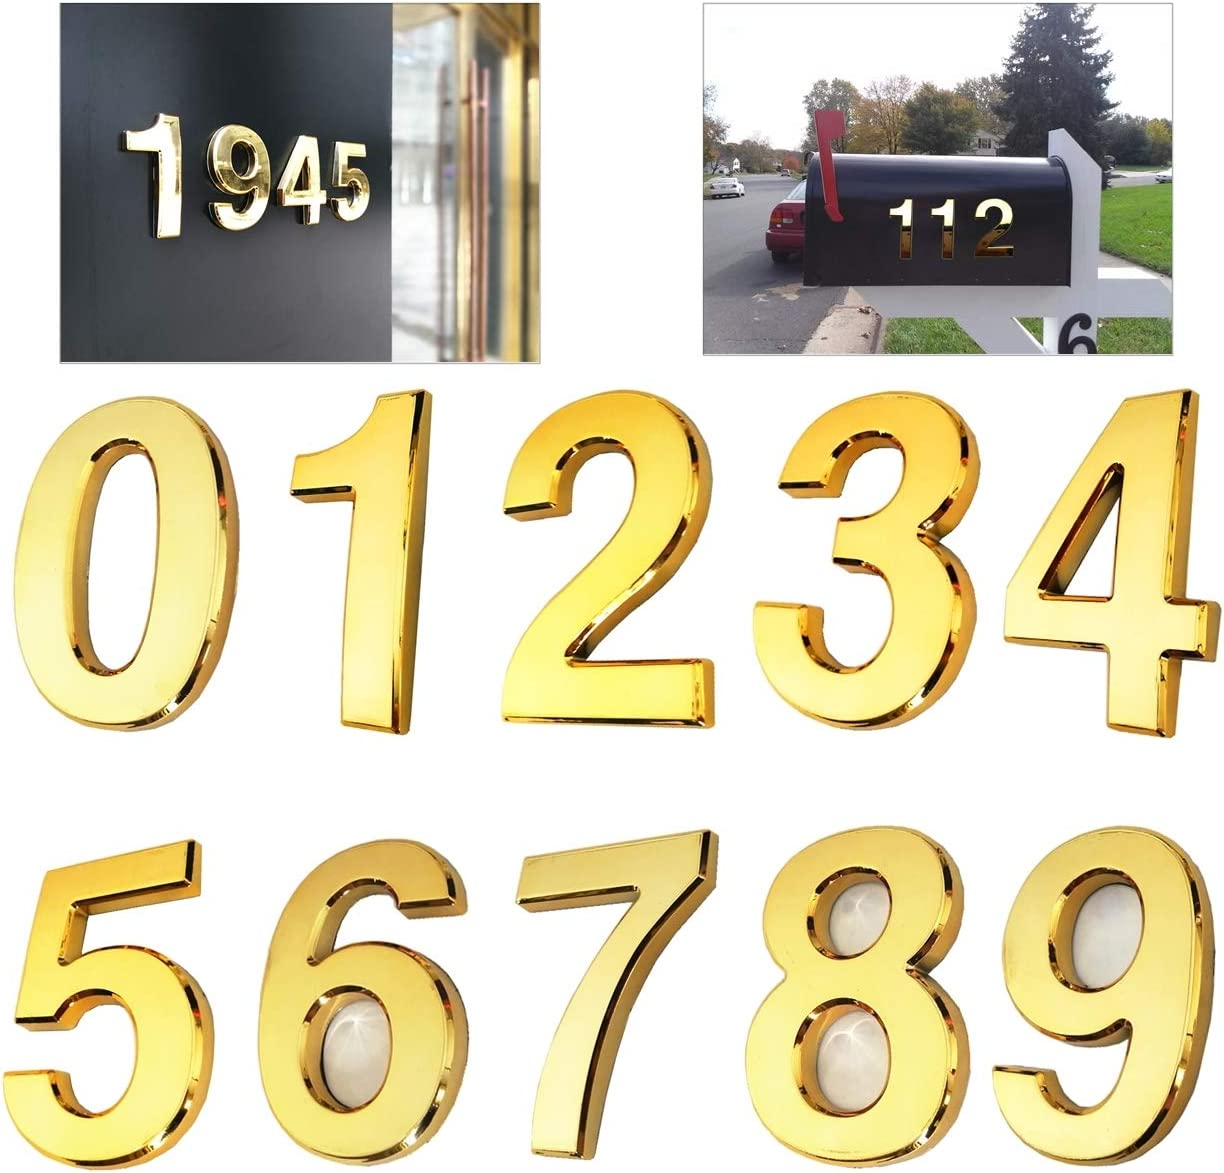 3D Address Numbers for Mailbox 10 Pcs Silver Door Numbers Stickers Office Room. 3 inch 0-9, Silver 3 Inch Self Stick House Numbers 0-9 Apartment